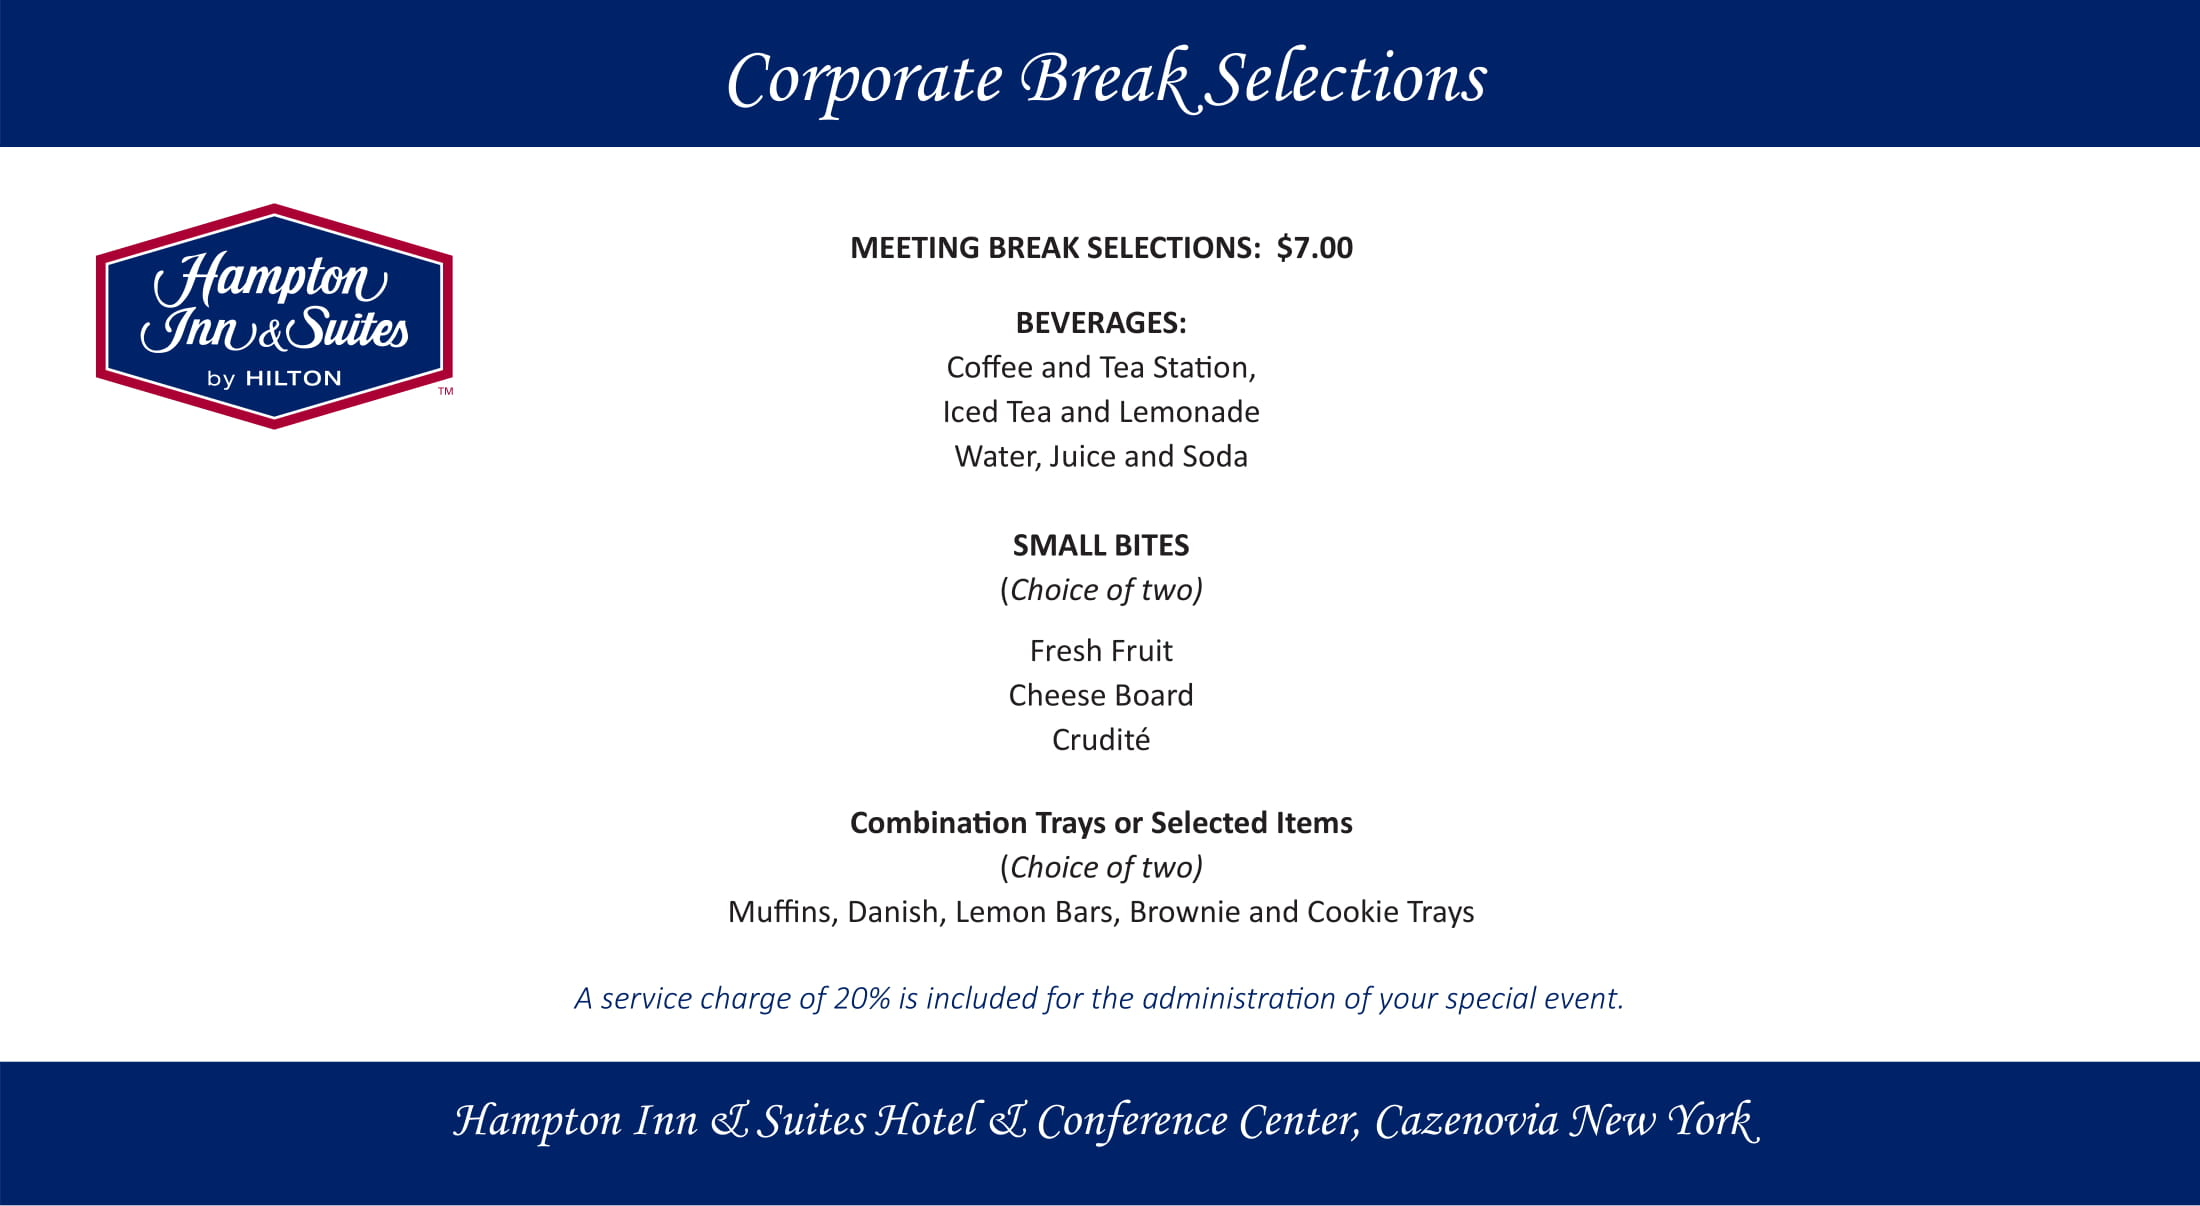 Corporate Break Selections